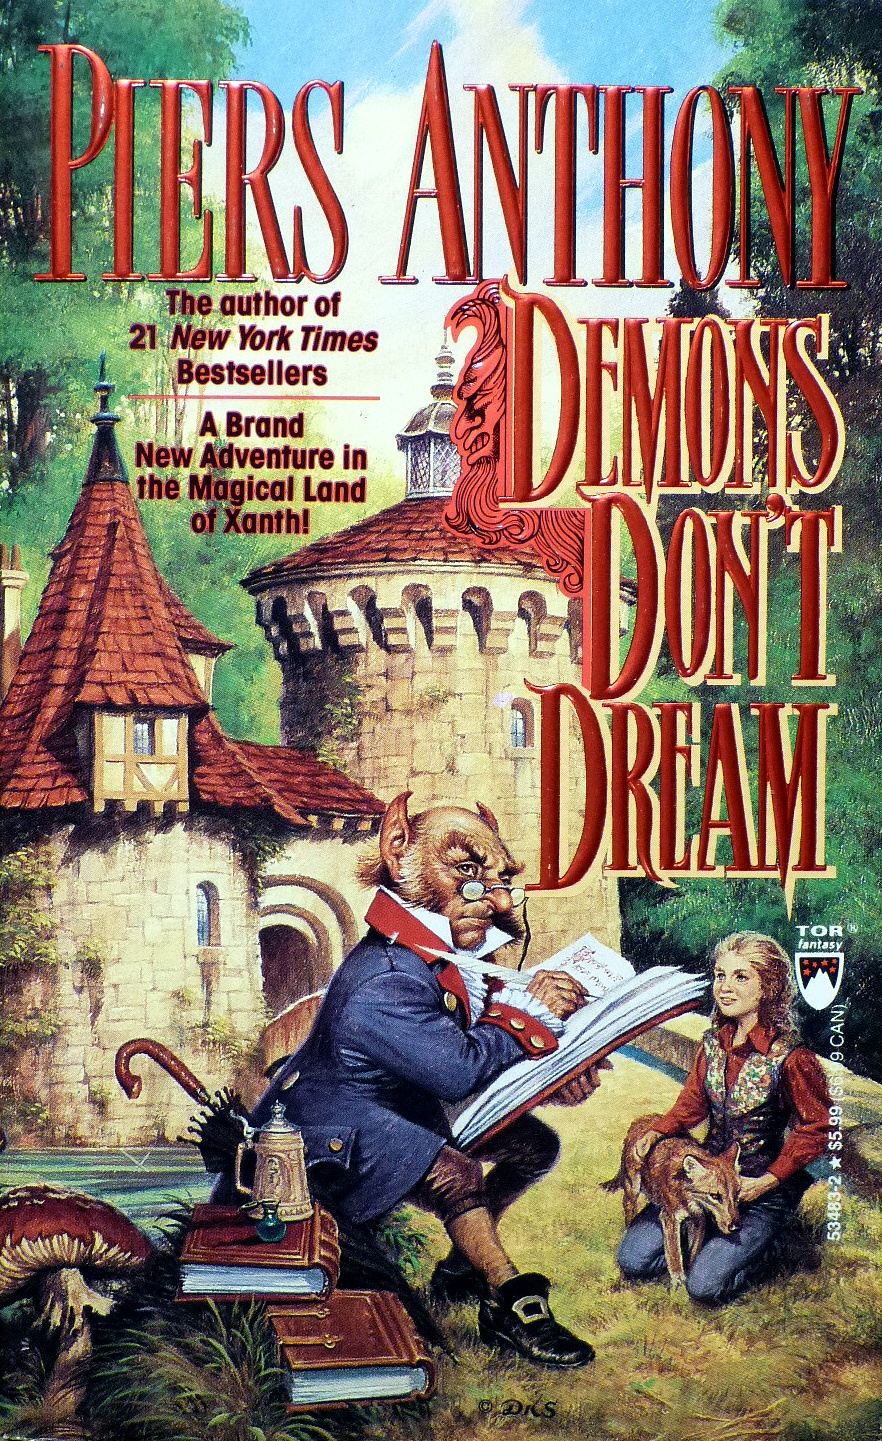 an analysis of demons dont dream by piers anthony Reuben wanjala an analysis of demons dont dream by piers anthony 9789506414740 9506414742 seleccion por competencias delle stesse dimensioni written and presented by evolutionary biologist richard dawkins life.